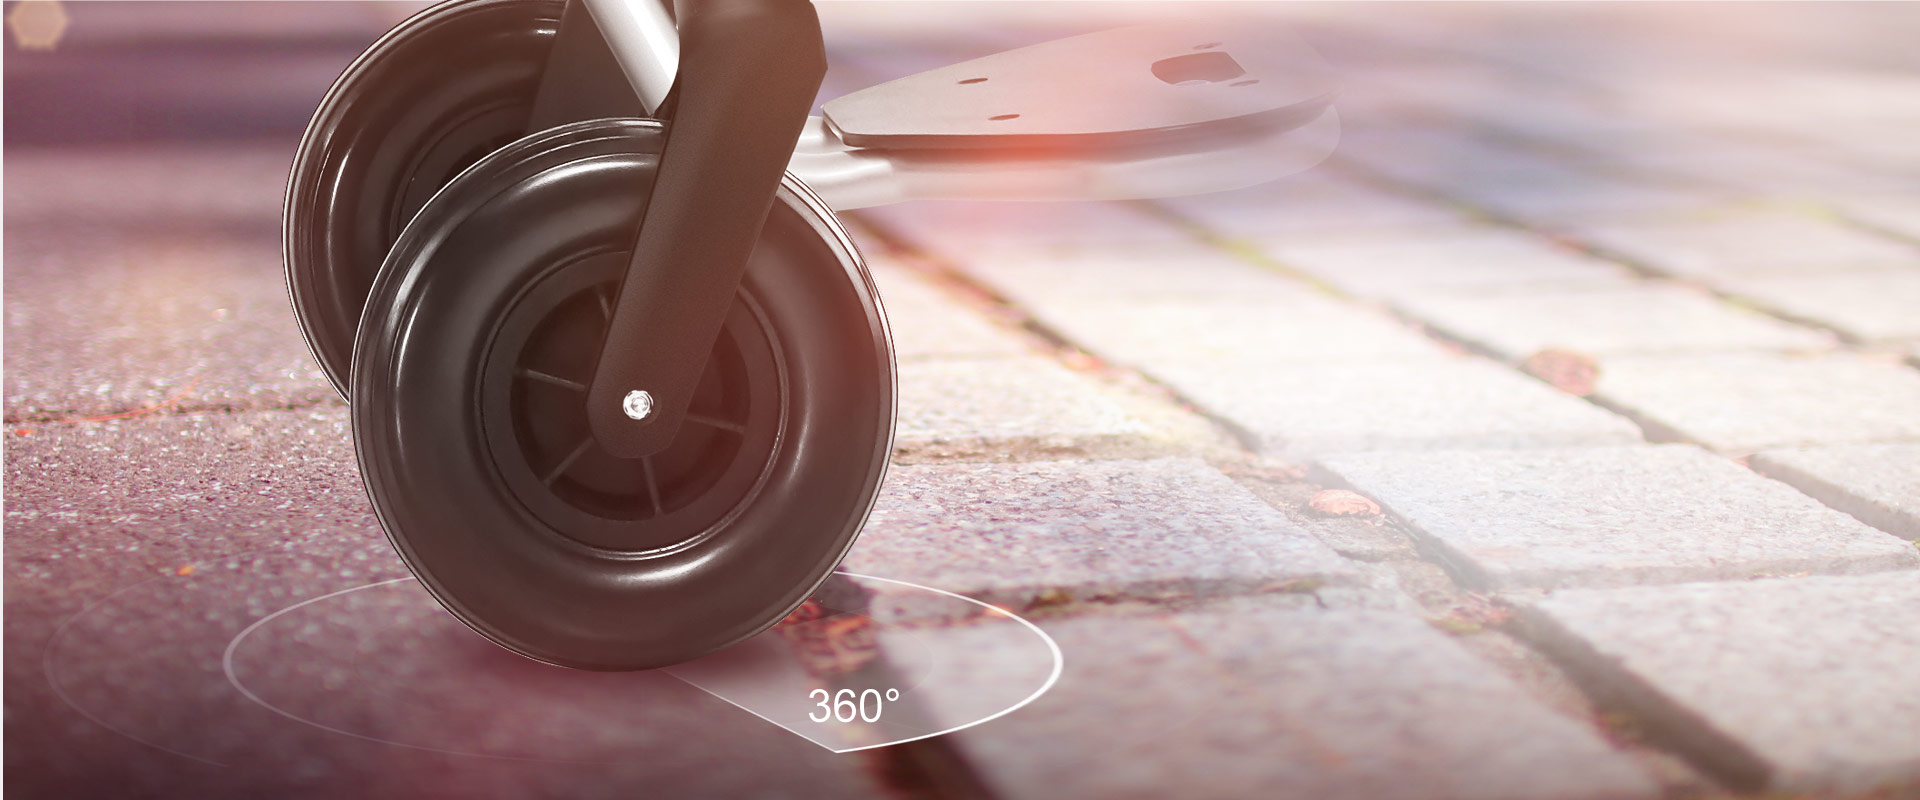 360 ° flexible steering